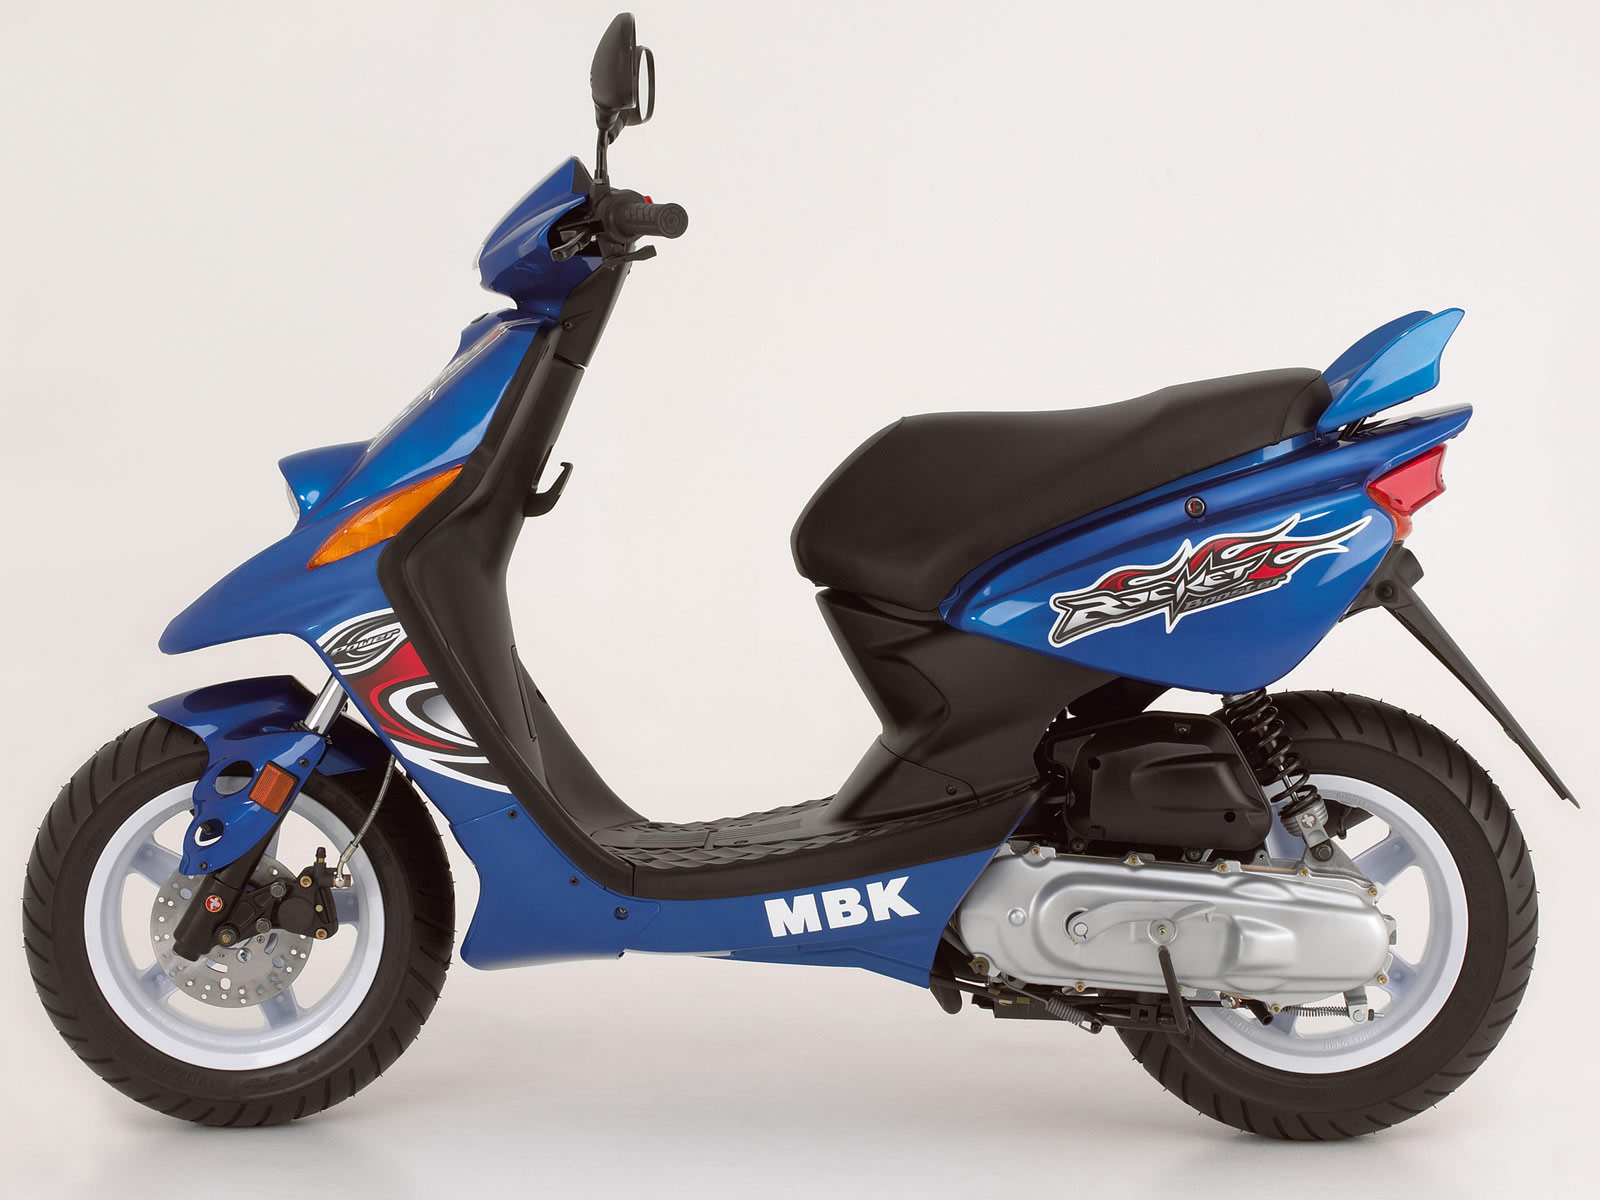 Mbk Booster Rocket 2007 Hi Res Scooter Wallpapers